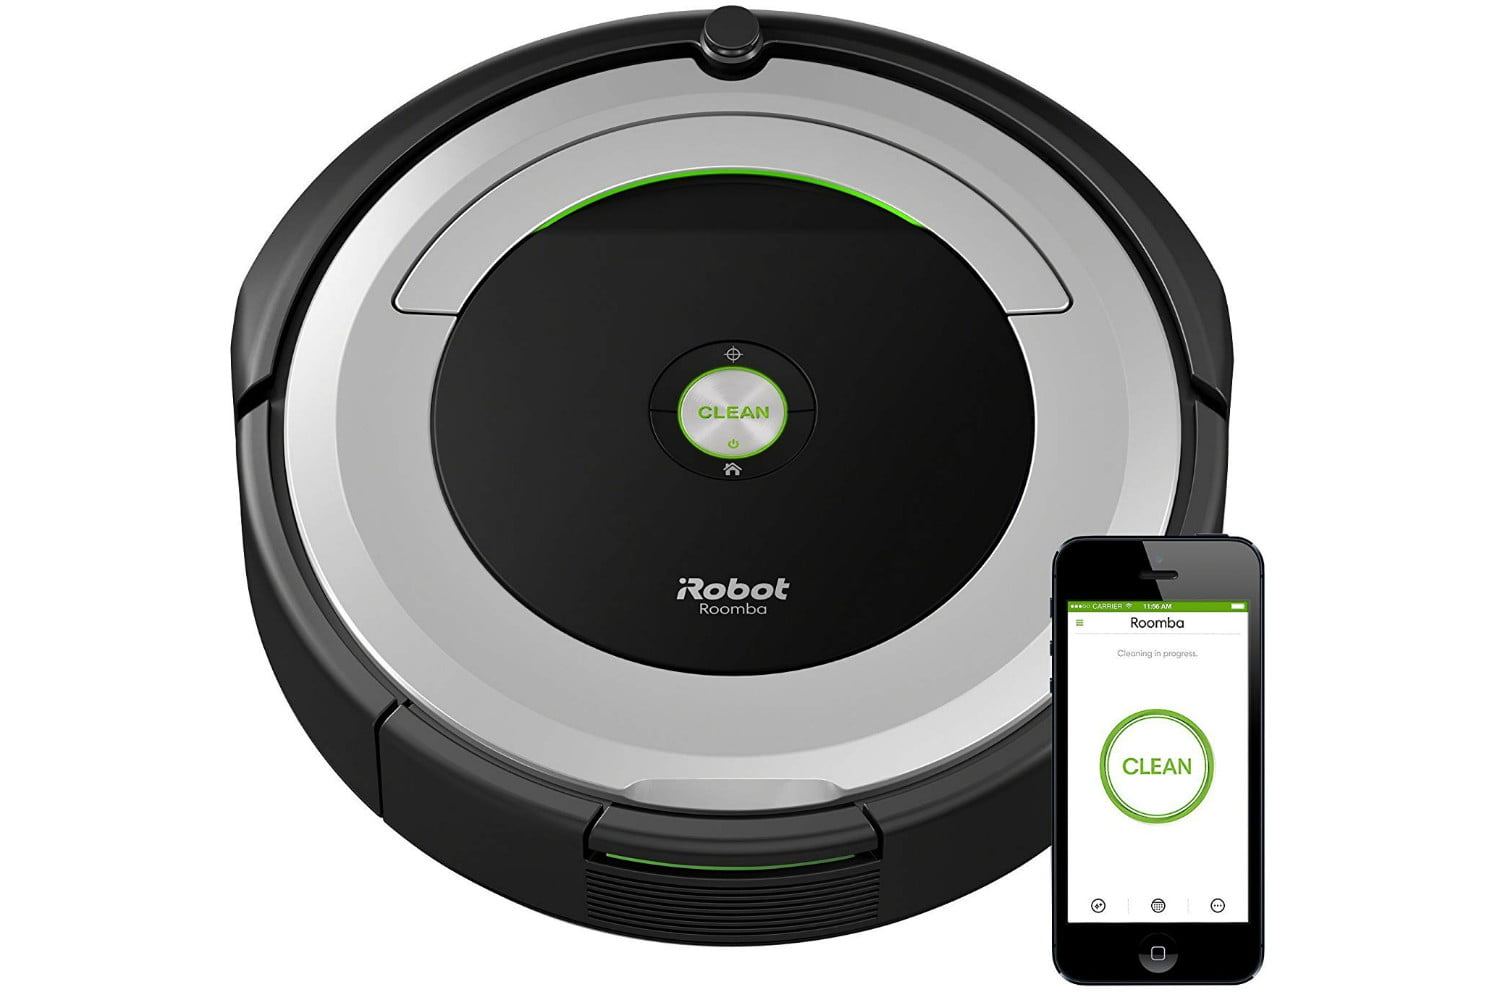 Amazon slashes $77 off the iRobot Roomba 690 multi-surface robot vacuum